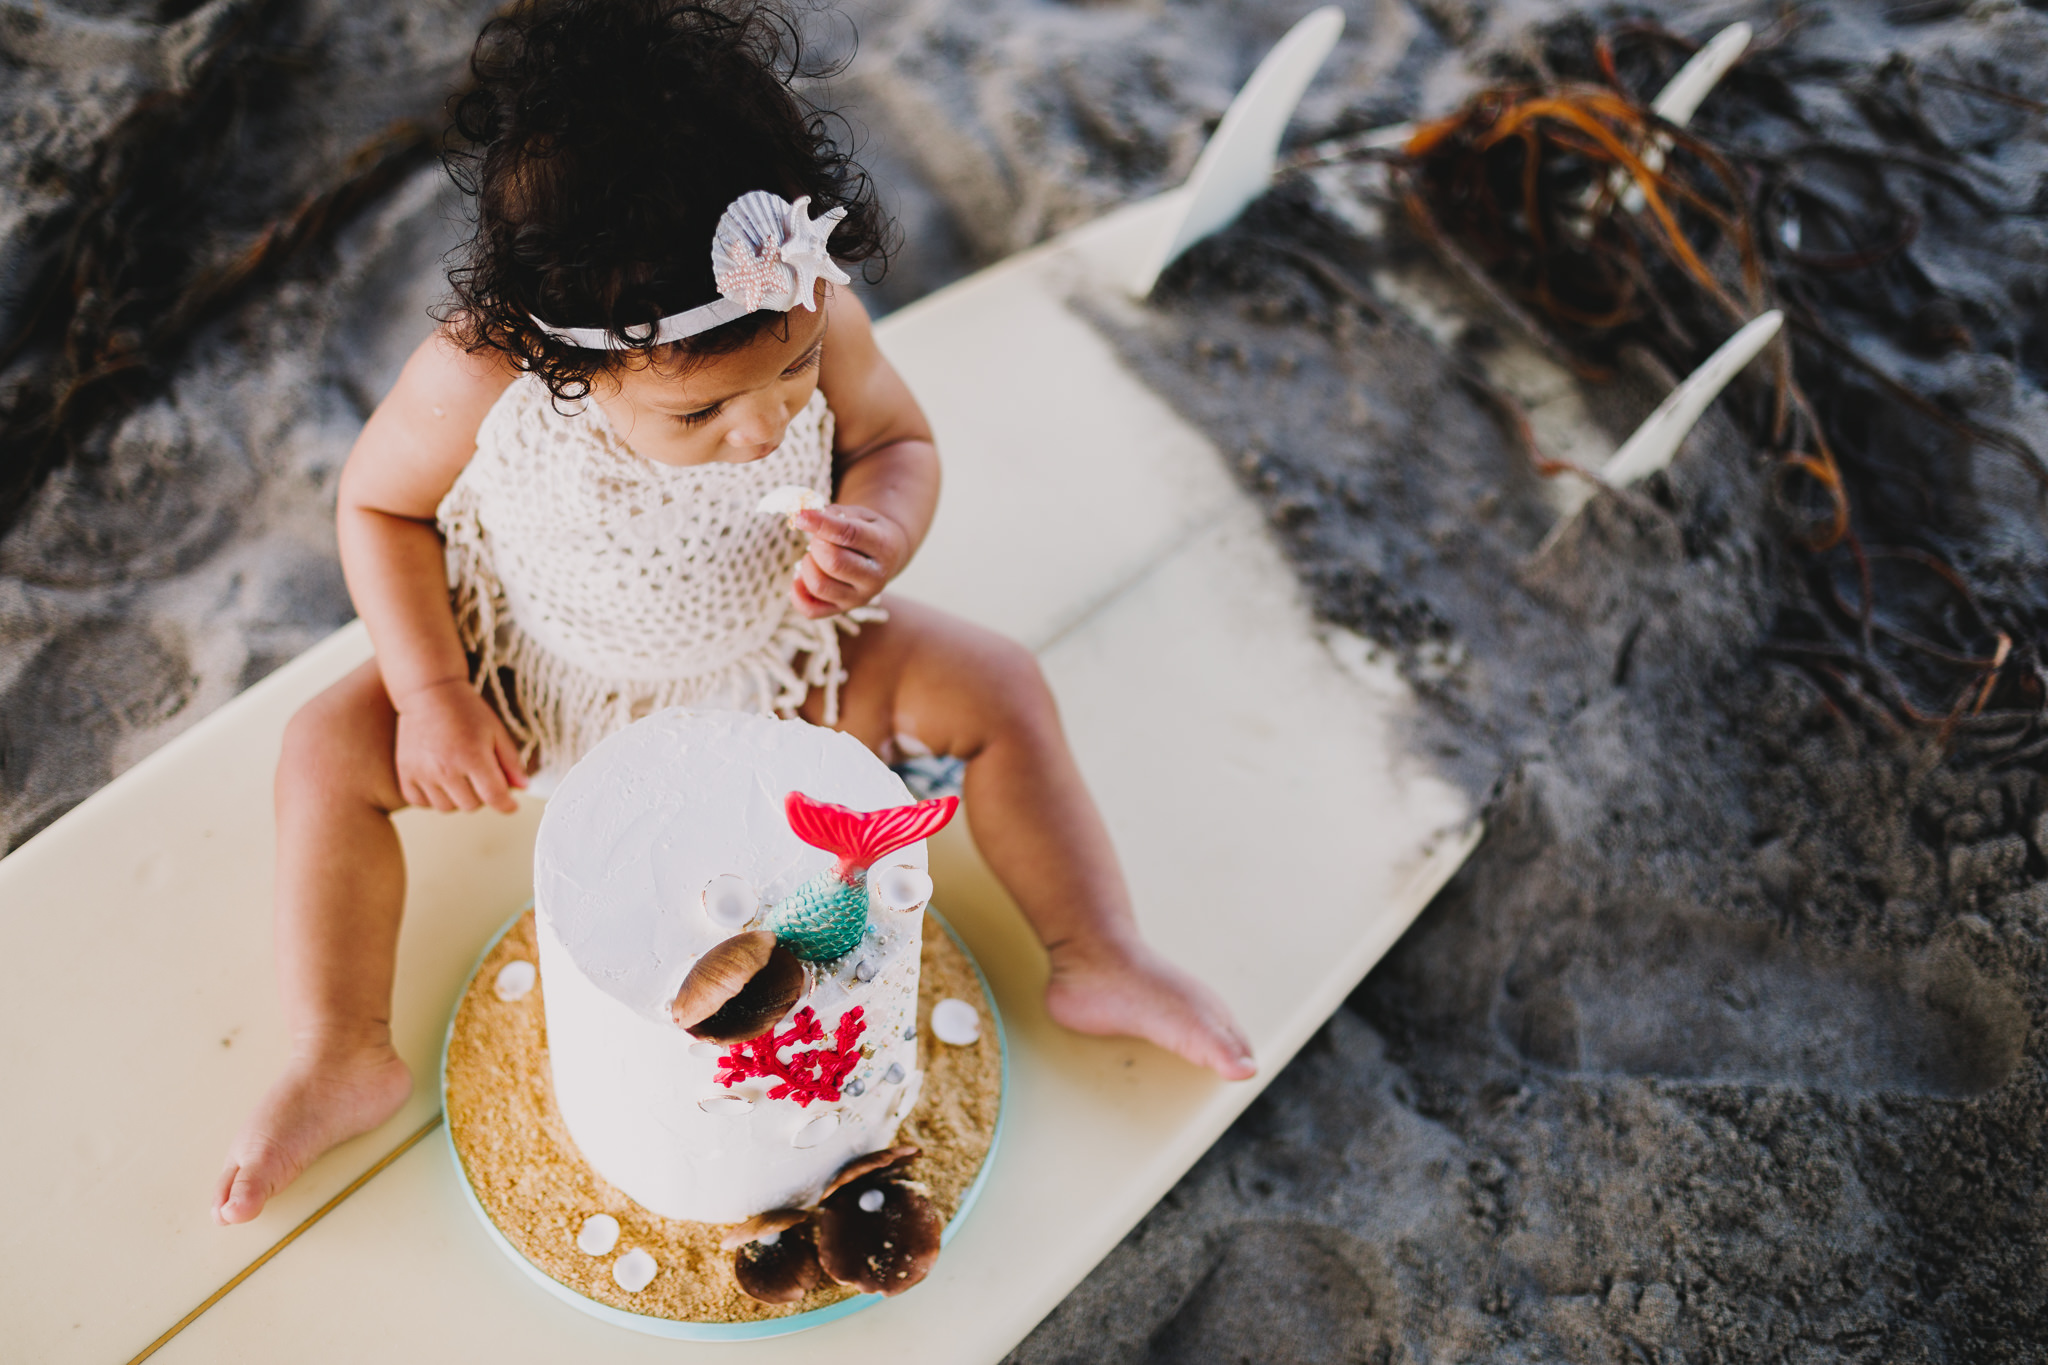 Archer Inspired Photography Cake Smash First Birthday Lifestyle Natural Light Documentary Family Photographer-9.jpg